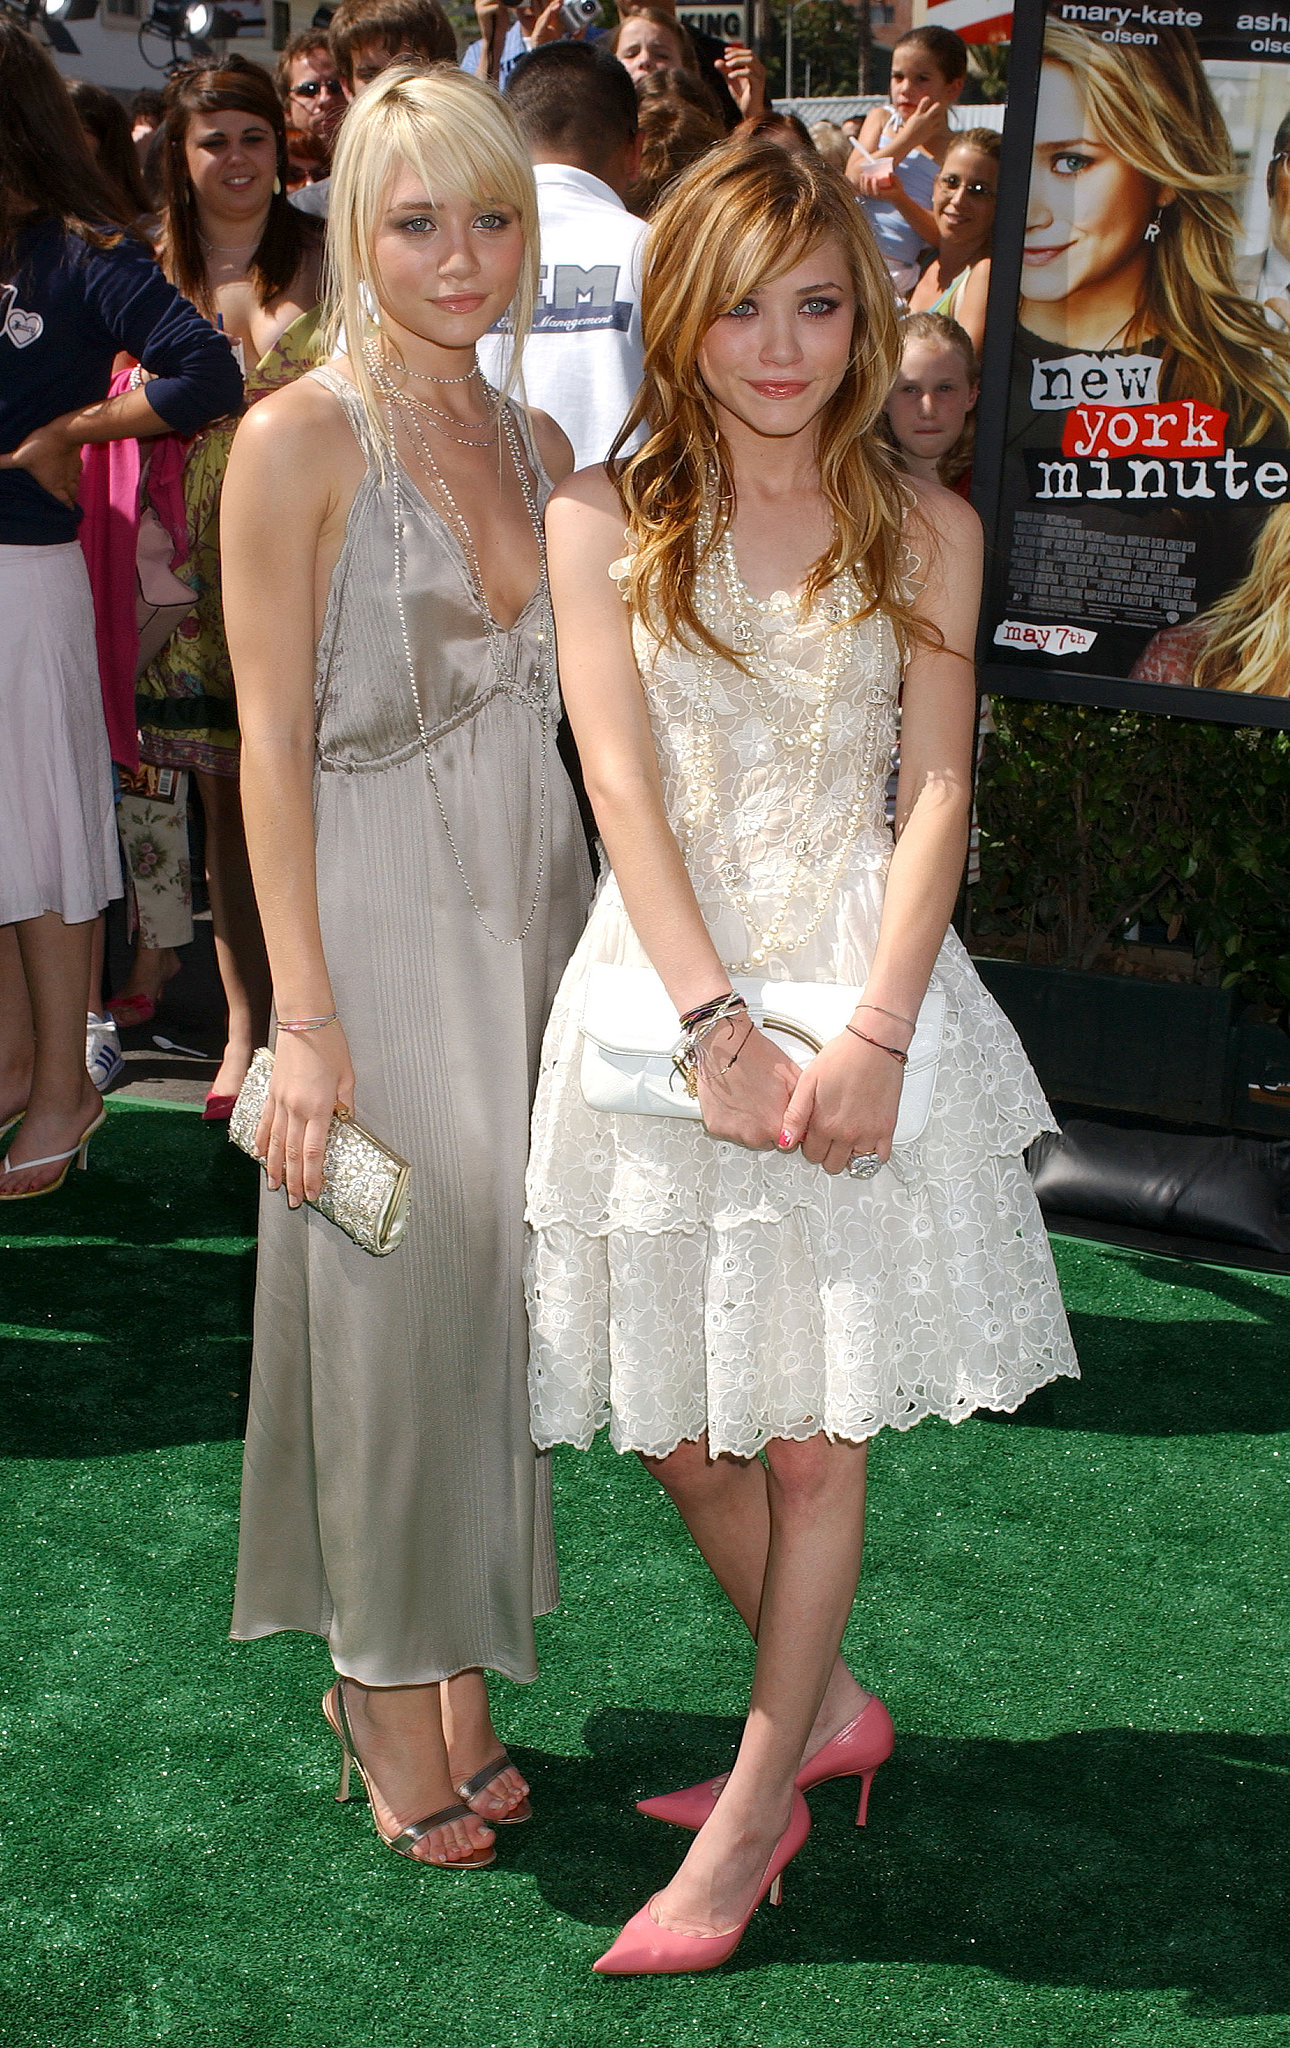 Twinning combo: For the Hollywood premiere of New York Minute, Mary-Kate and Ashley channeled the roaring 20s in ladylike looks accessorized with strands of pearls.  Ashley chose a gray pleated halter with metallic sandals and a glistening clutch. Mary-Kate paired a tiered lace dress with pink pointed pumps and a white leather clutch.